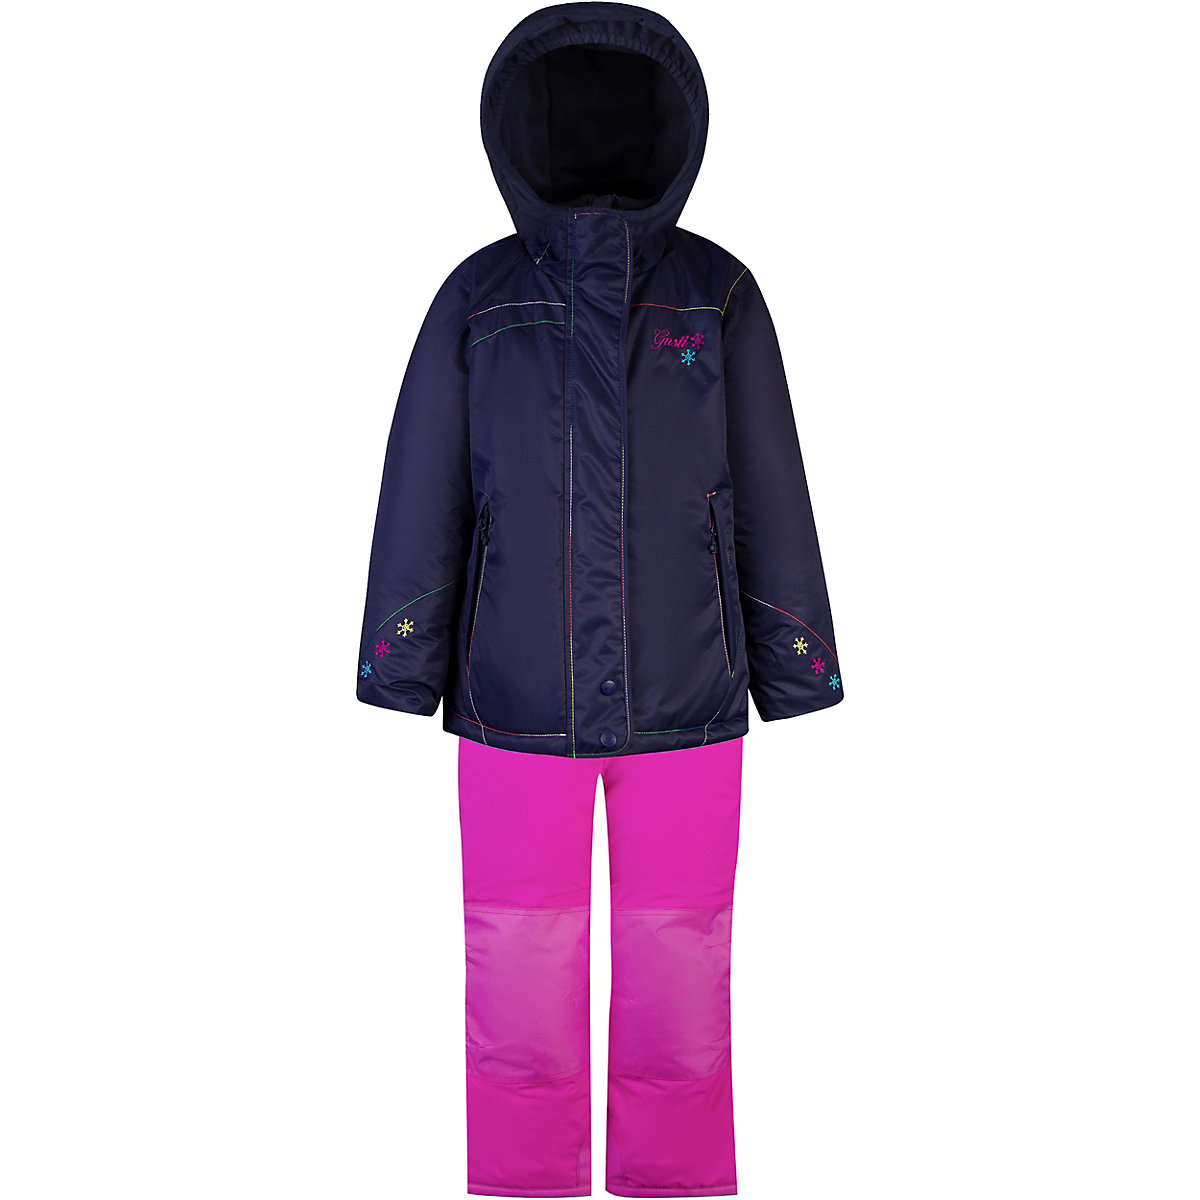 GUSTI Children's Sets 9512028 clothing for girls set dress winter clothes girl kids wear bondibon раскраска антистресс мистические совы